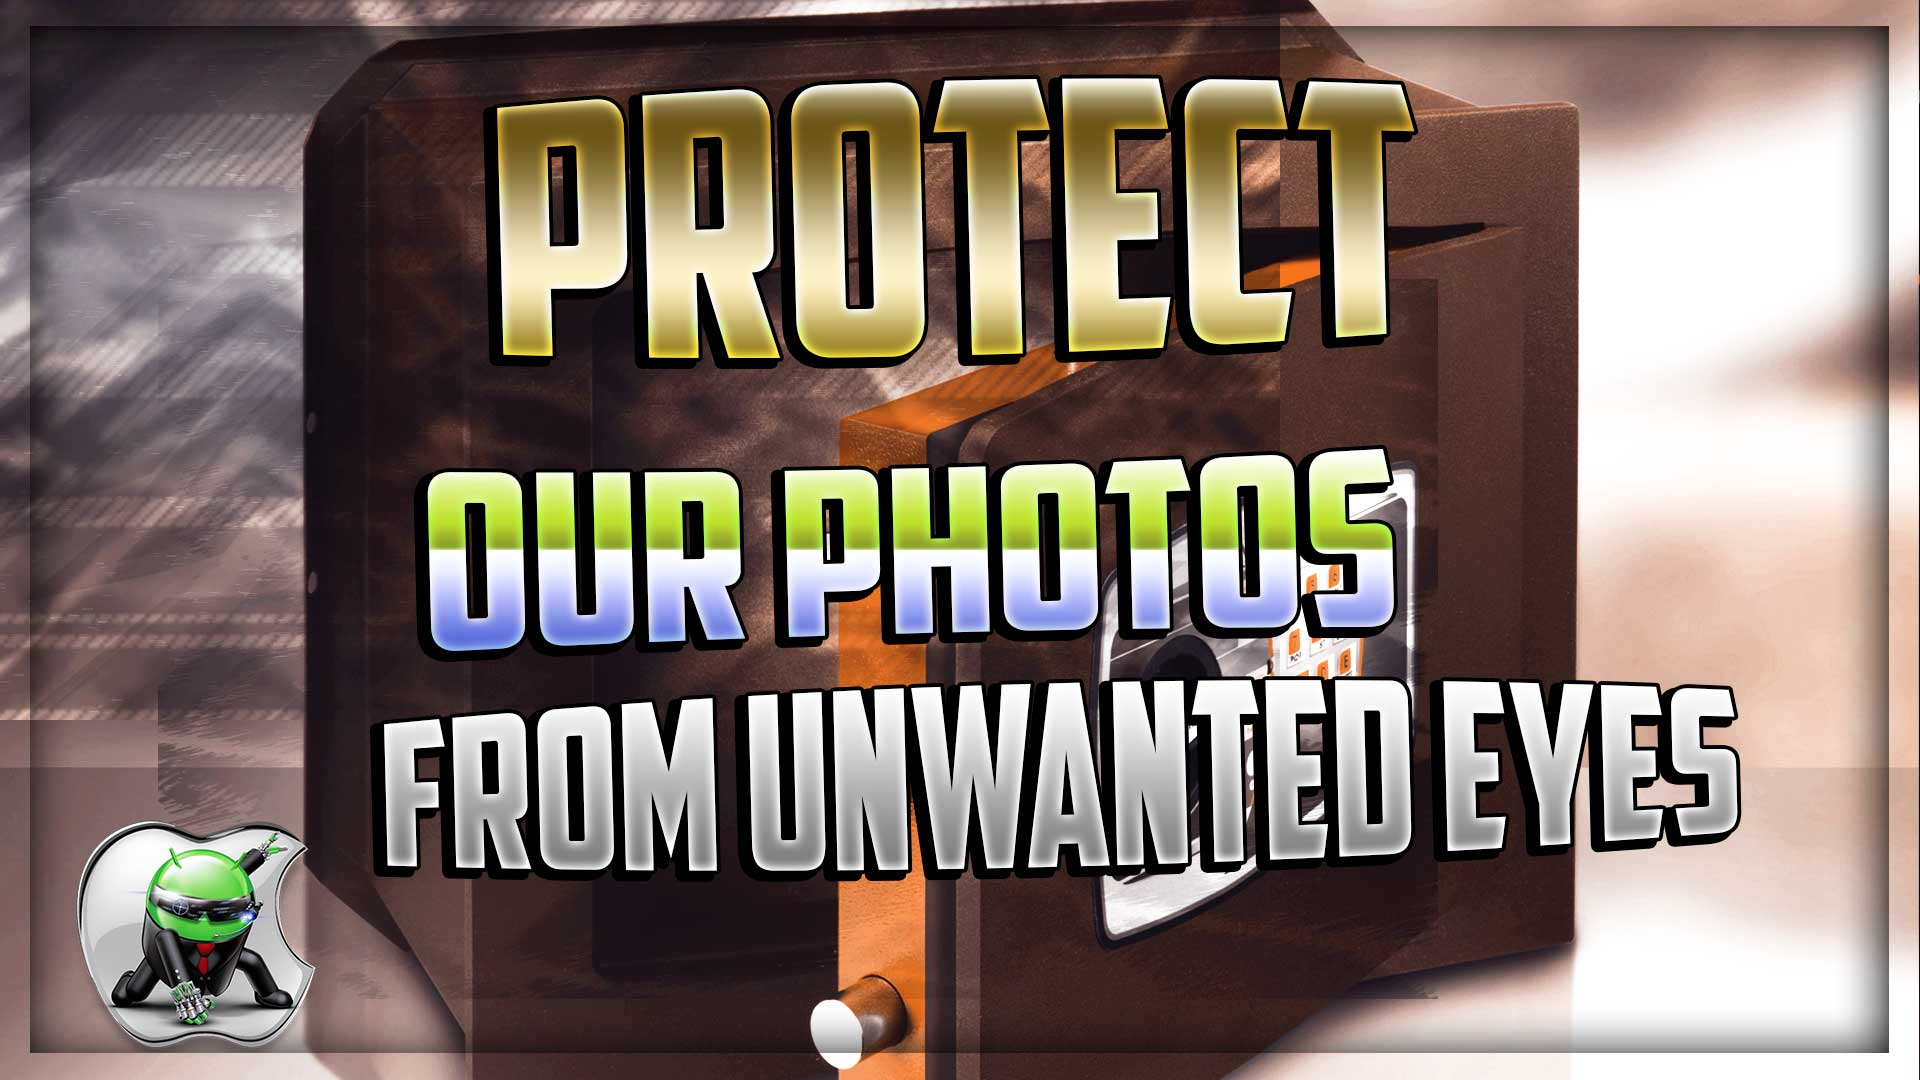 Protect our photos from unwanted eyes